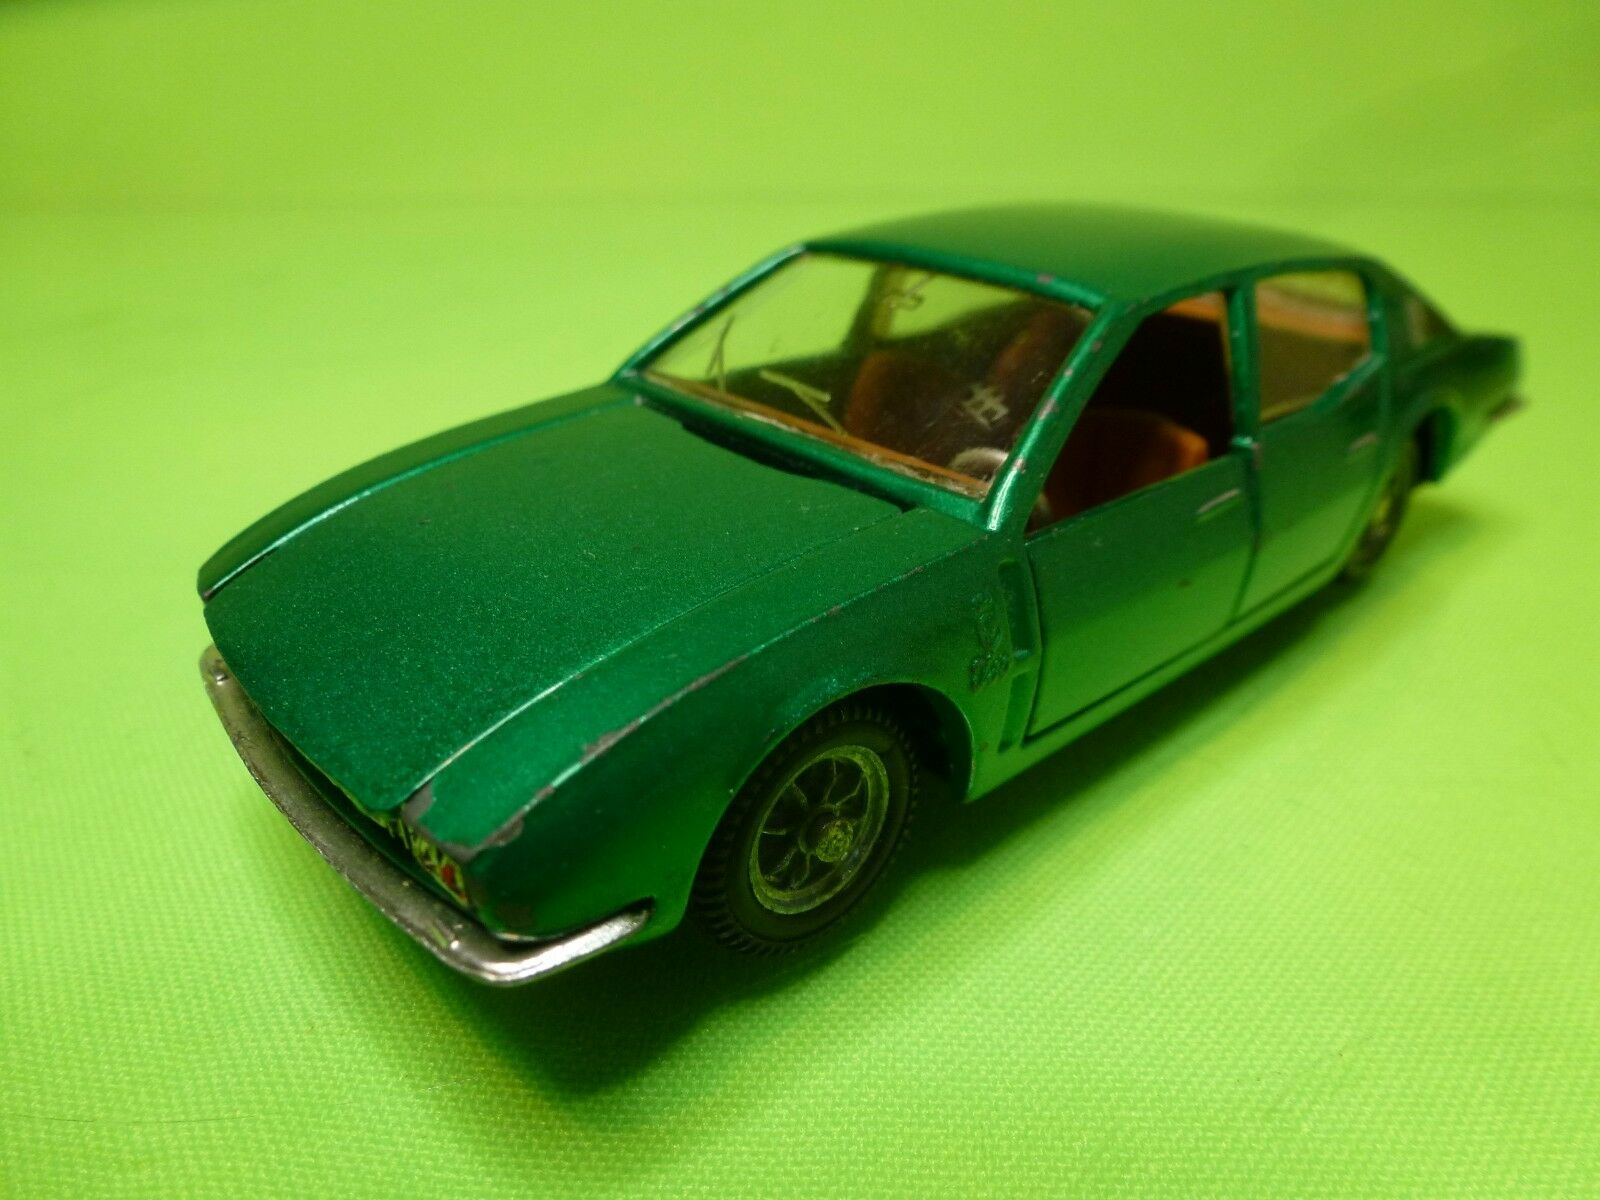 MEBETOYS A30  ISO RIVOLTA S4 - - - METALLIC verde 1 43 - GOOD CONDITION eb2f6a